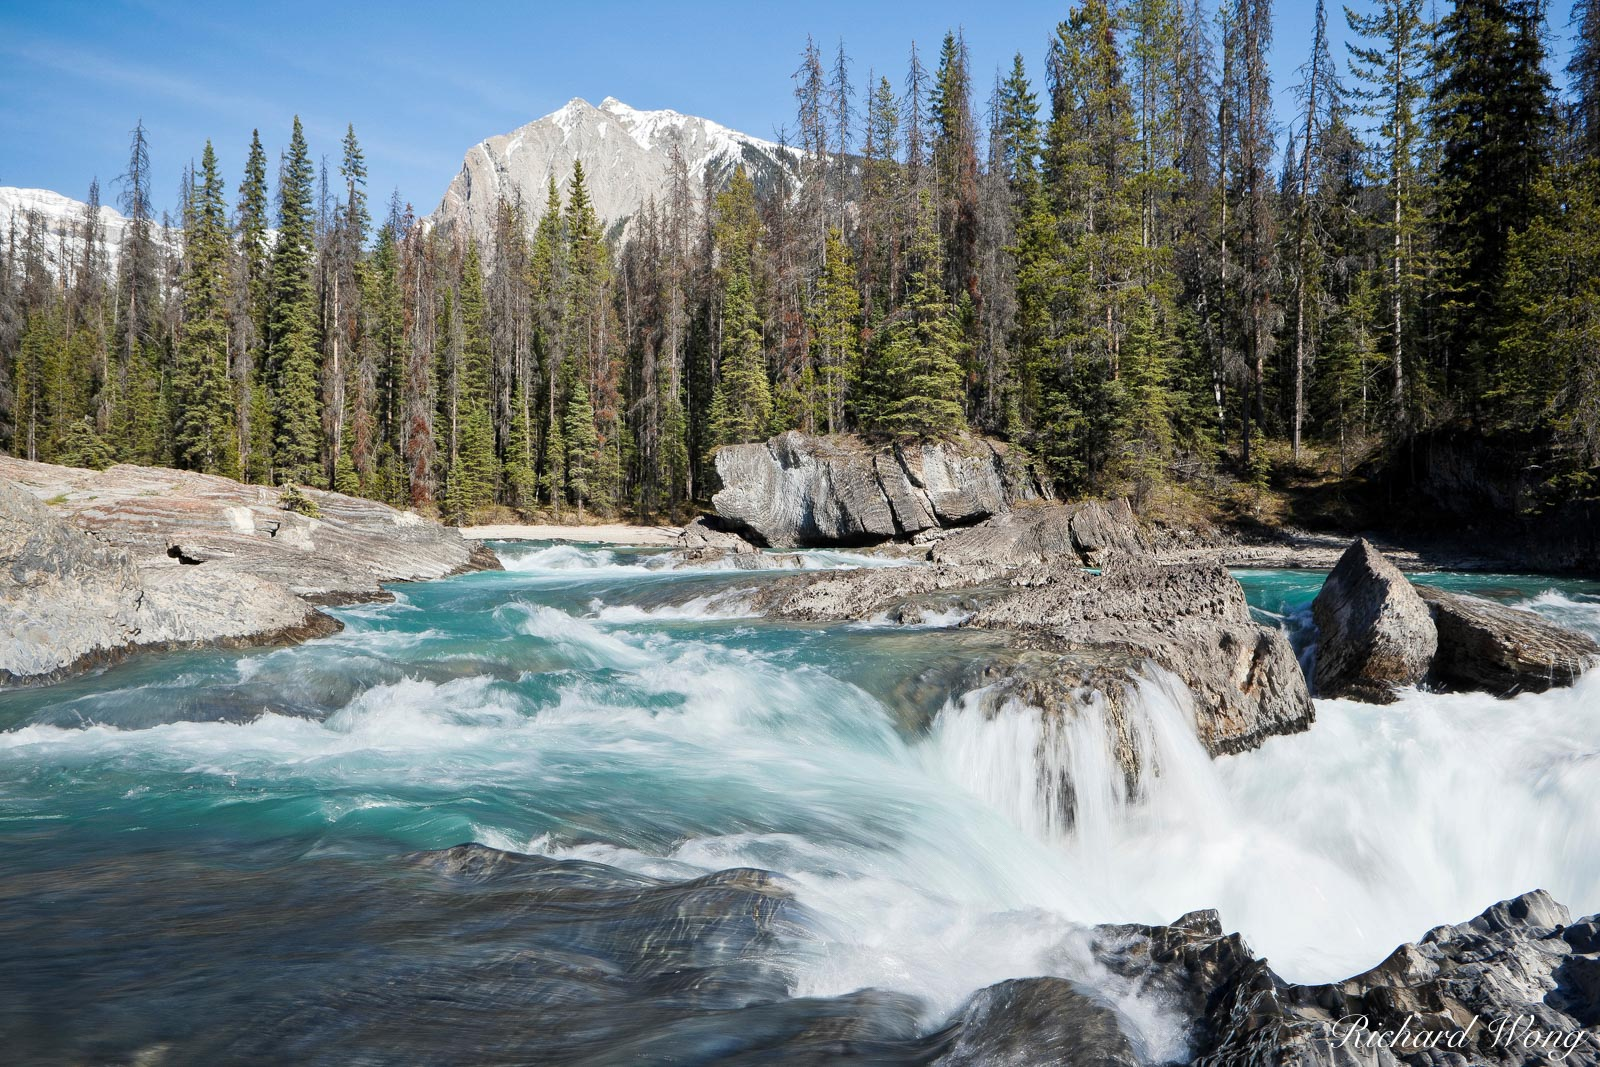 Powerful Rapids of Kicking Horse River About to Flow Through Natural Bridge with Mt. Dennis in Background, Yoho National Park, British Columbia, Canada, Photo, photo